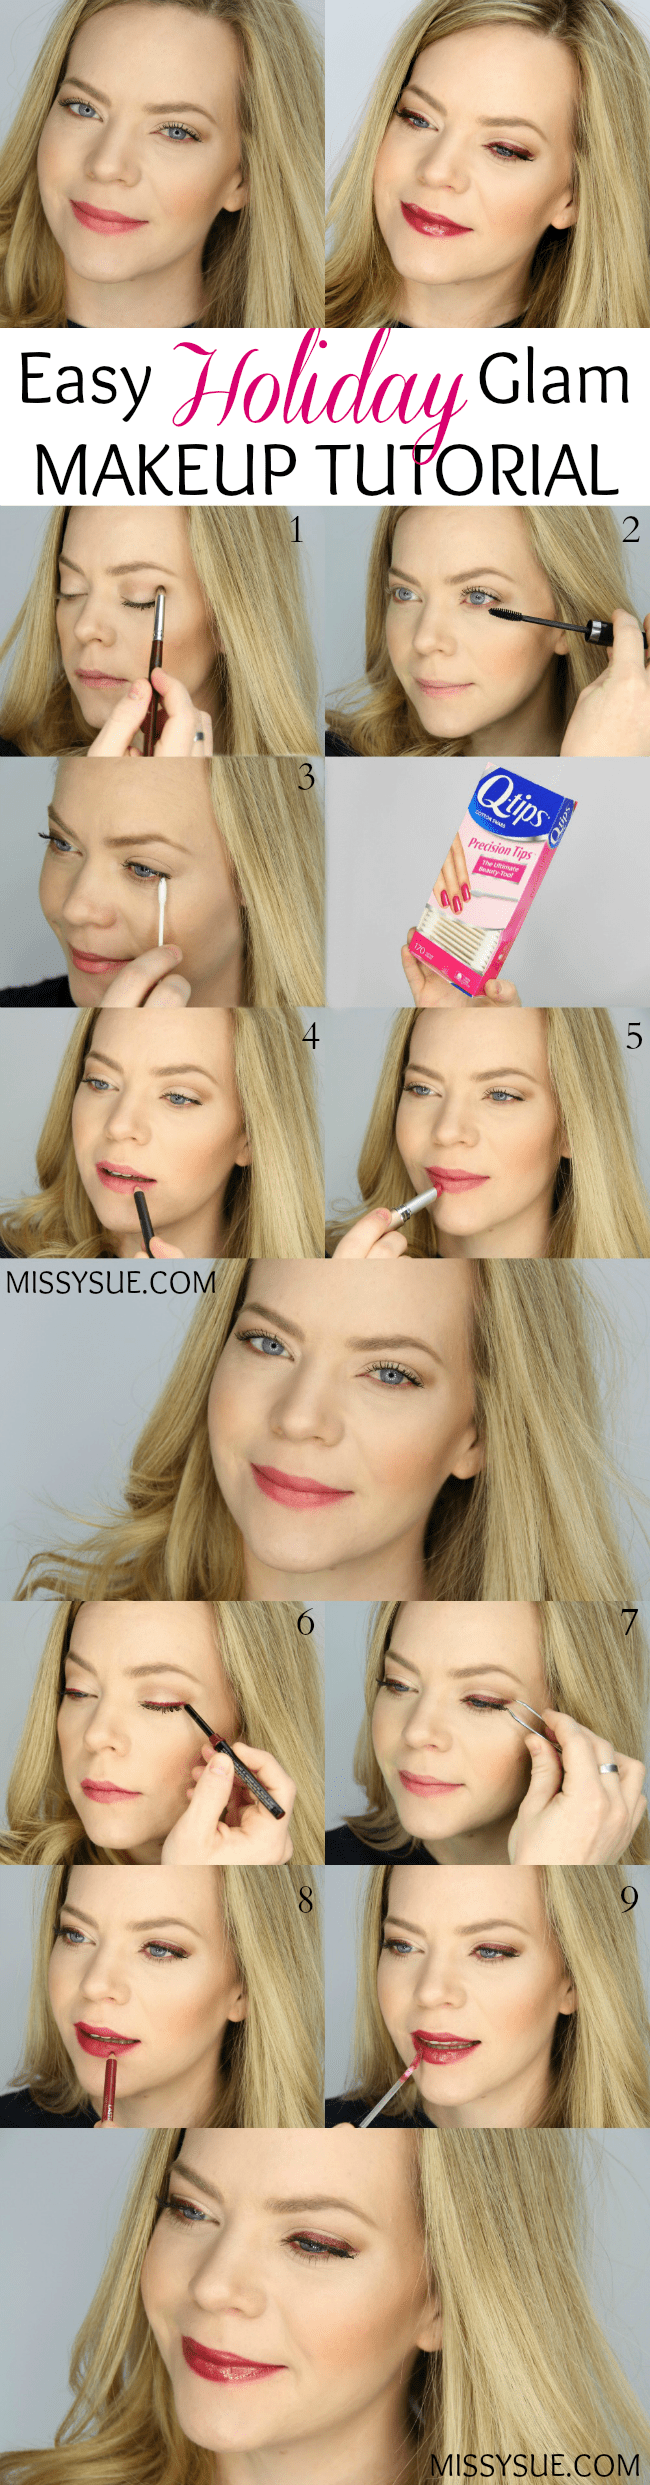 Easy Holiday Glam Makeup Tutorial